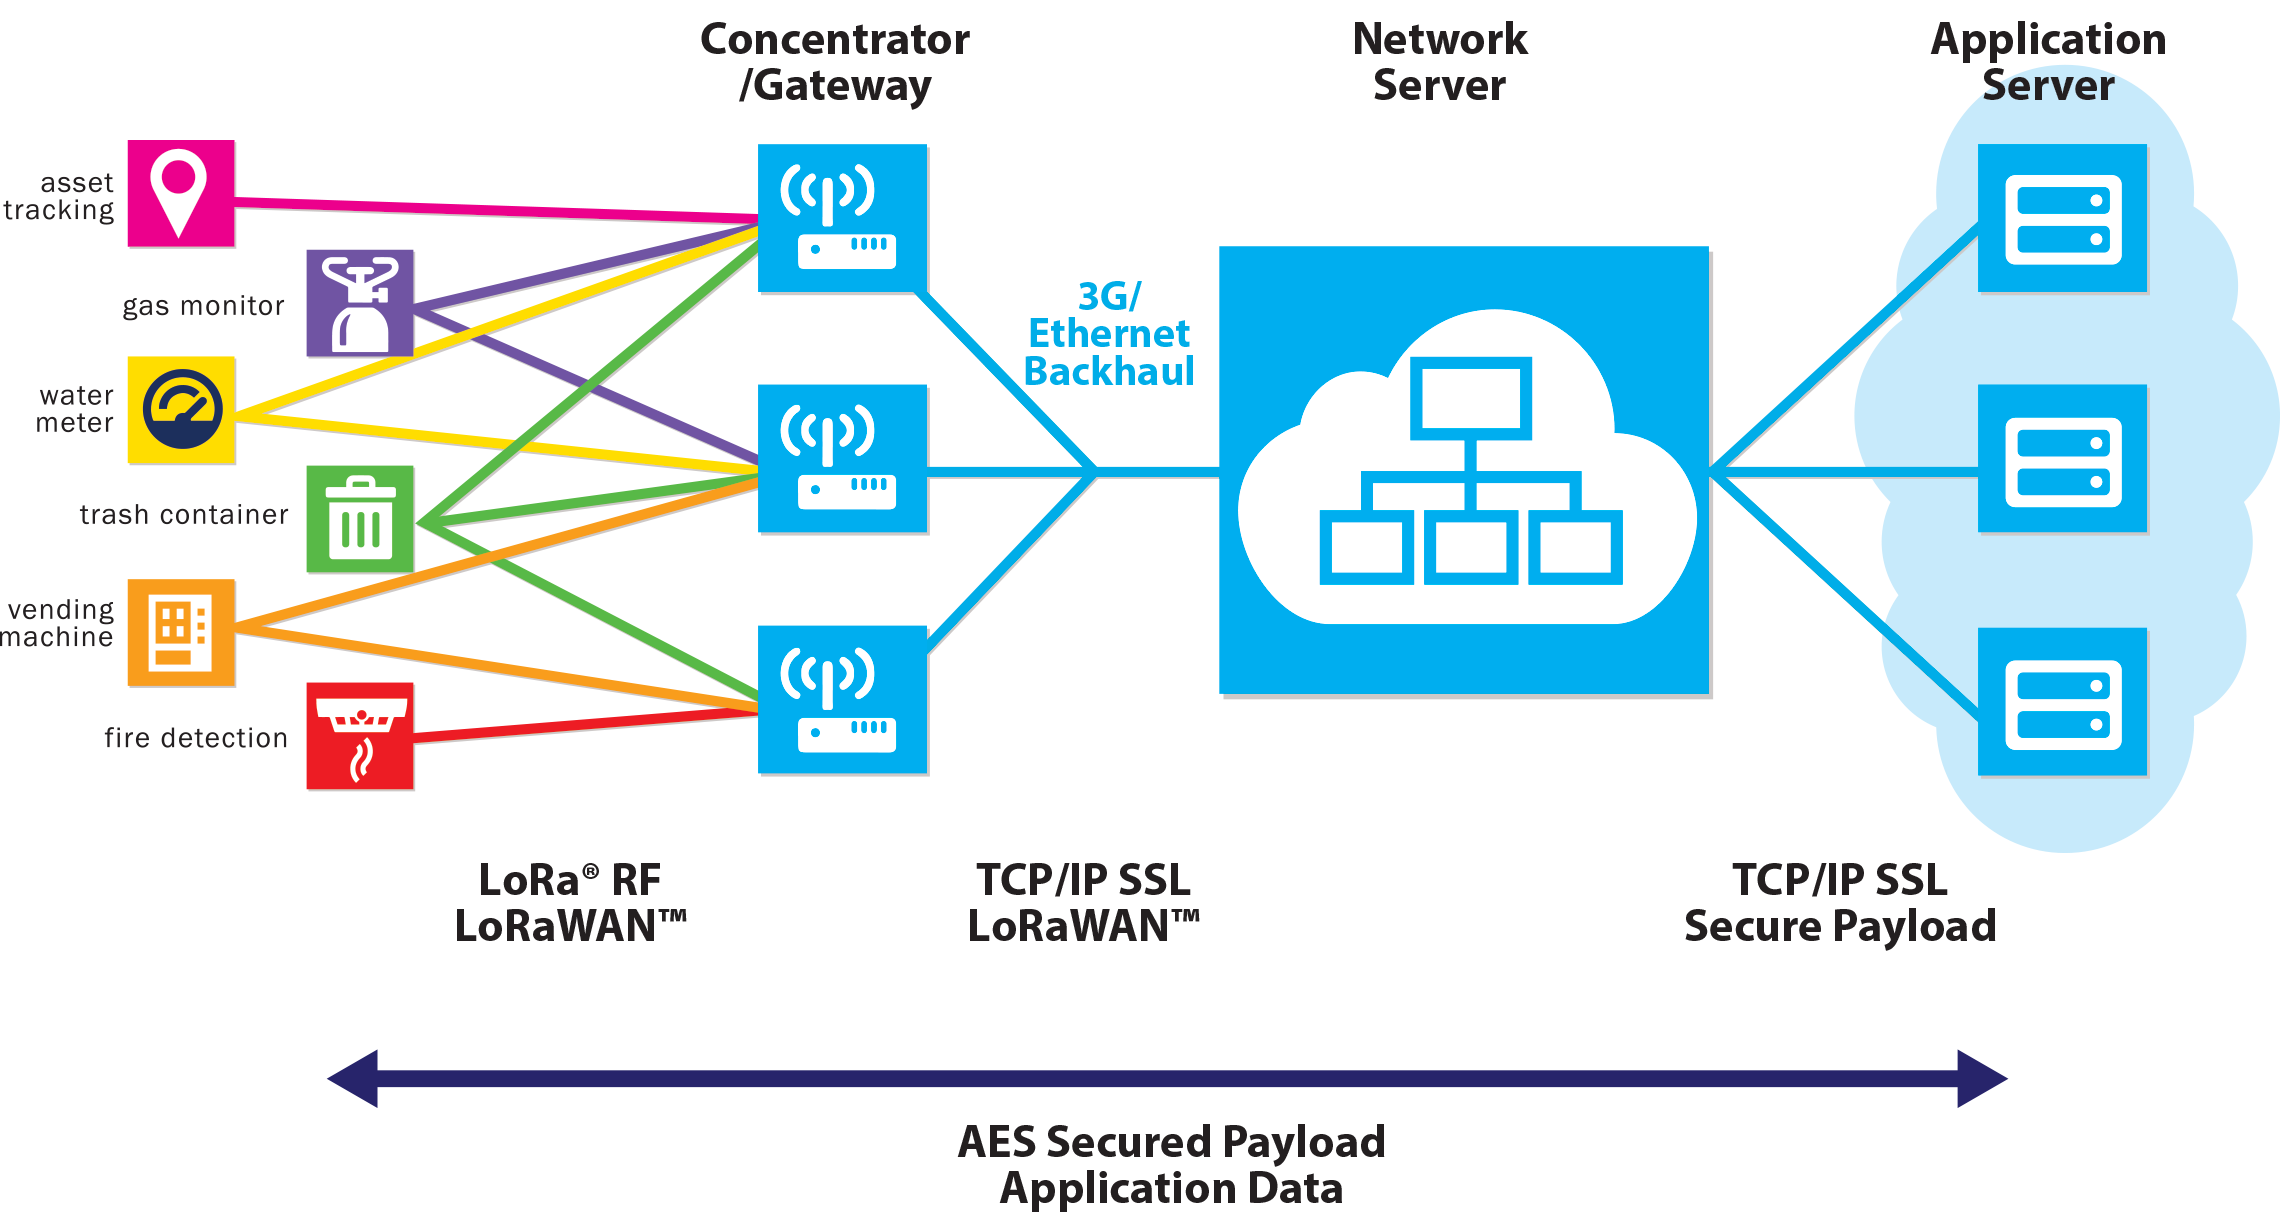 ... wireless sensor network, but may also be a service or infrastructure  offered by a third party, allowing the owners of sensors to deploy them in  the ...